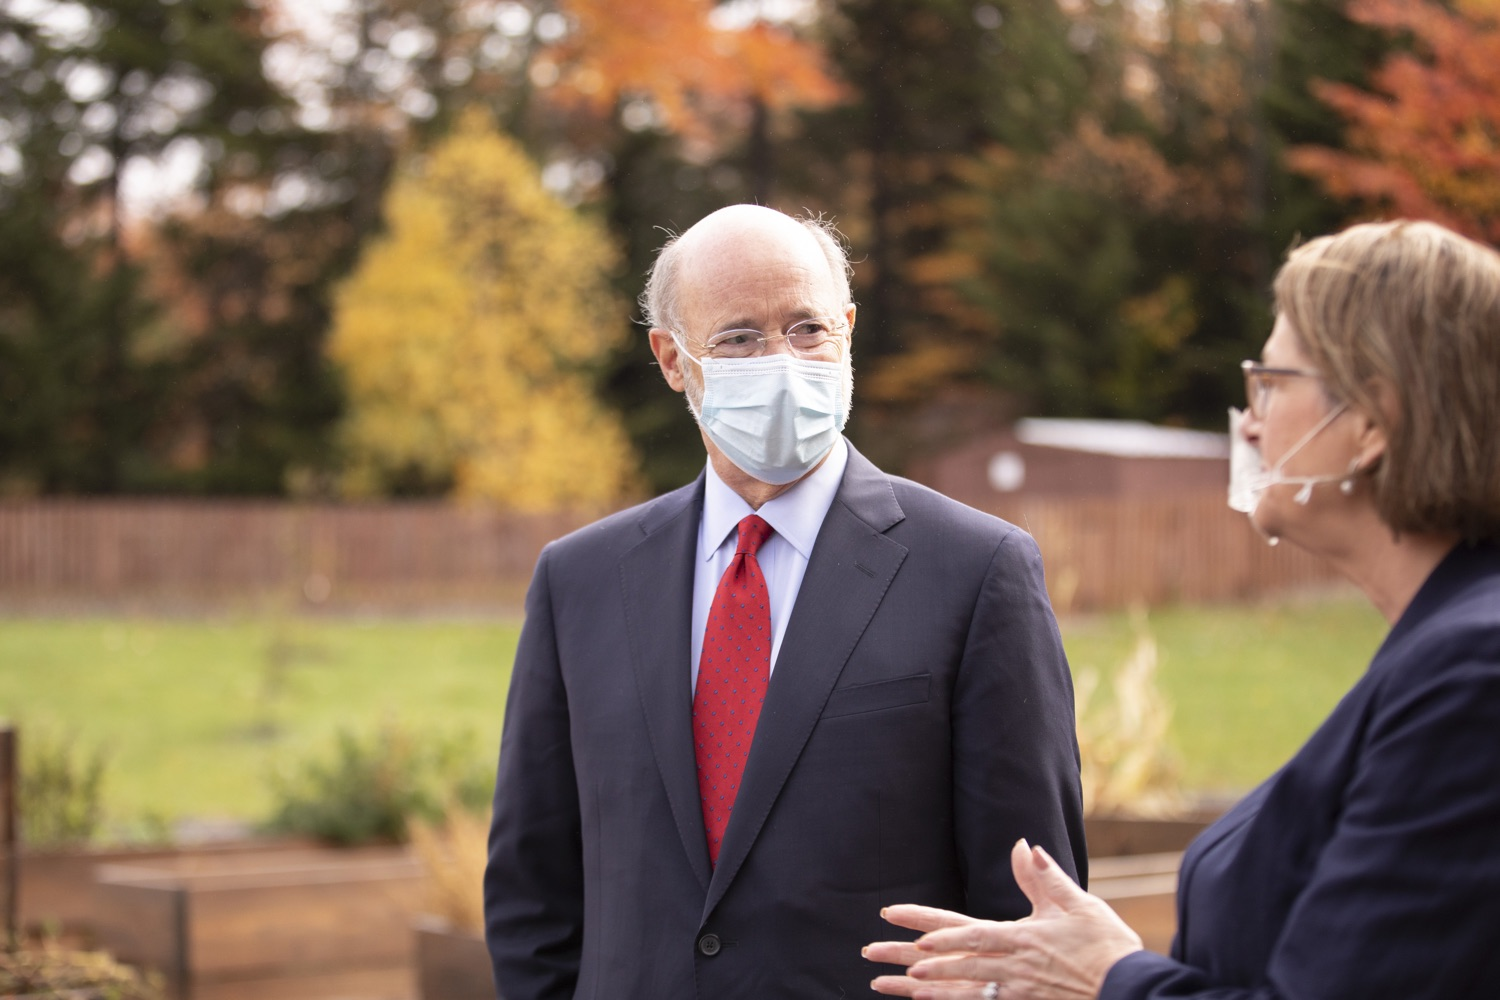 """<a href=""""https://filesource.wostreaming.net/commonwealthofpa/photo/18310_gov_adult_use_cannabis_dz_006.jpg"""" target=""""_blank"""">⇣Download Photo<br></a>Governor Tom Wolf touring The Mountain Center with Rep. Maureen Madden. Governor Tom Wolf visited The Mountain Center in Tobyhanna, Monroe County today to talk about the economic growth potential and restorative justice benefits of legalizing adult-use cannabis, something the state General Assembly has not yet done despite multiple requests from the governor and Lieutenant Governor John Fetterman to take up legislation this fall.  Tobyhanna, PA  October 13, 2020"""